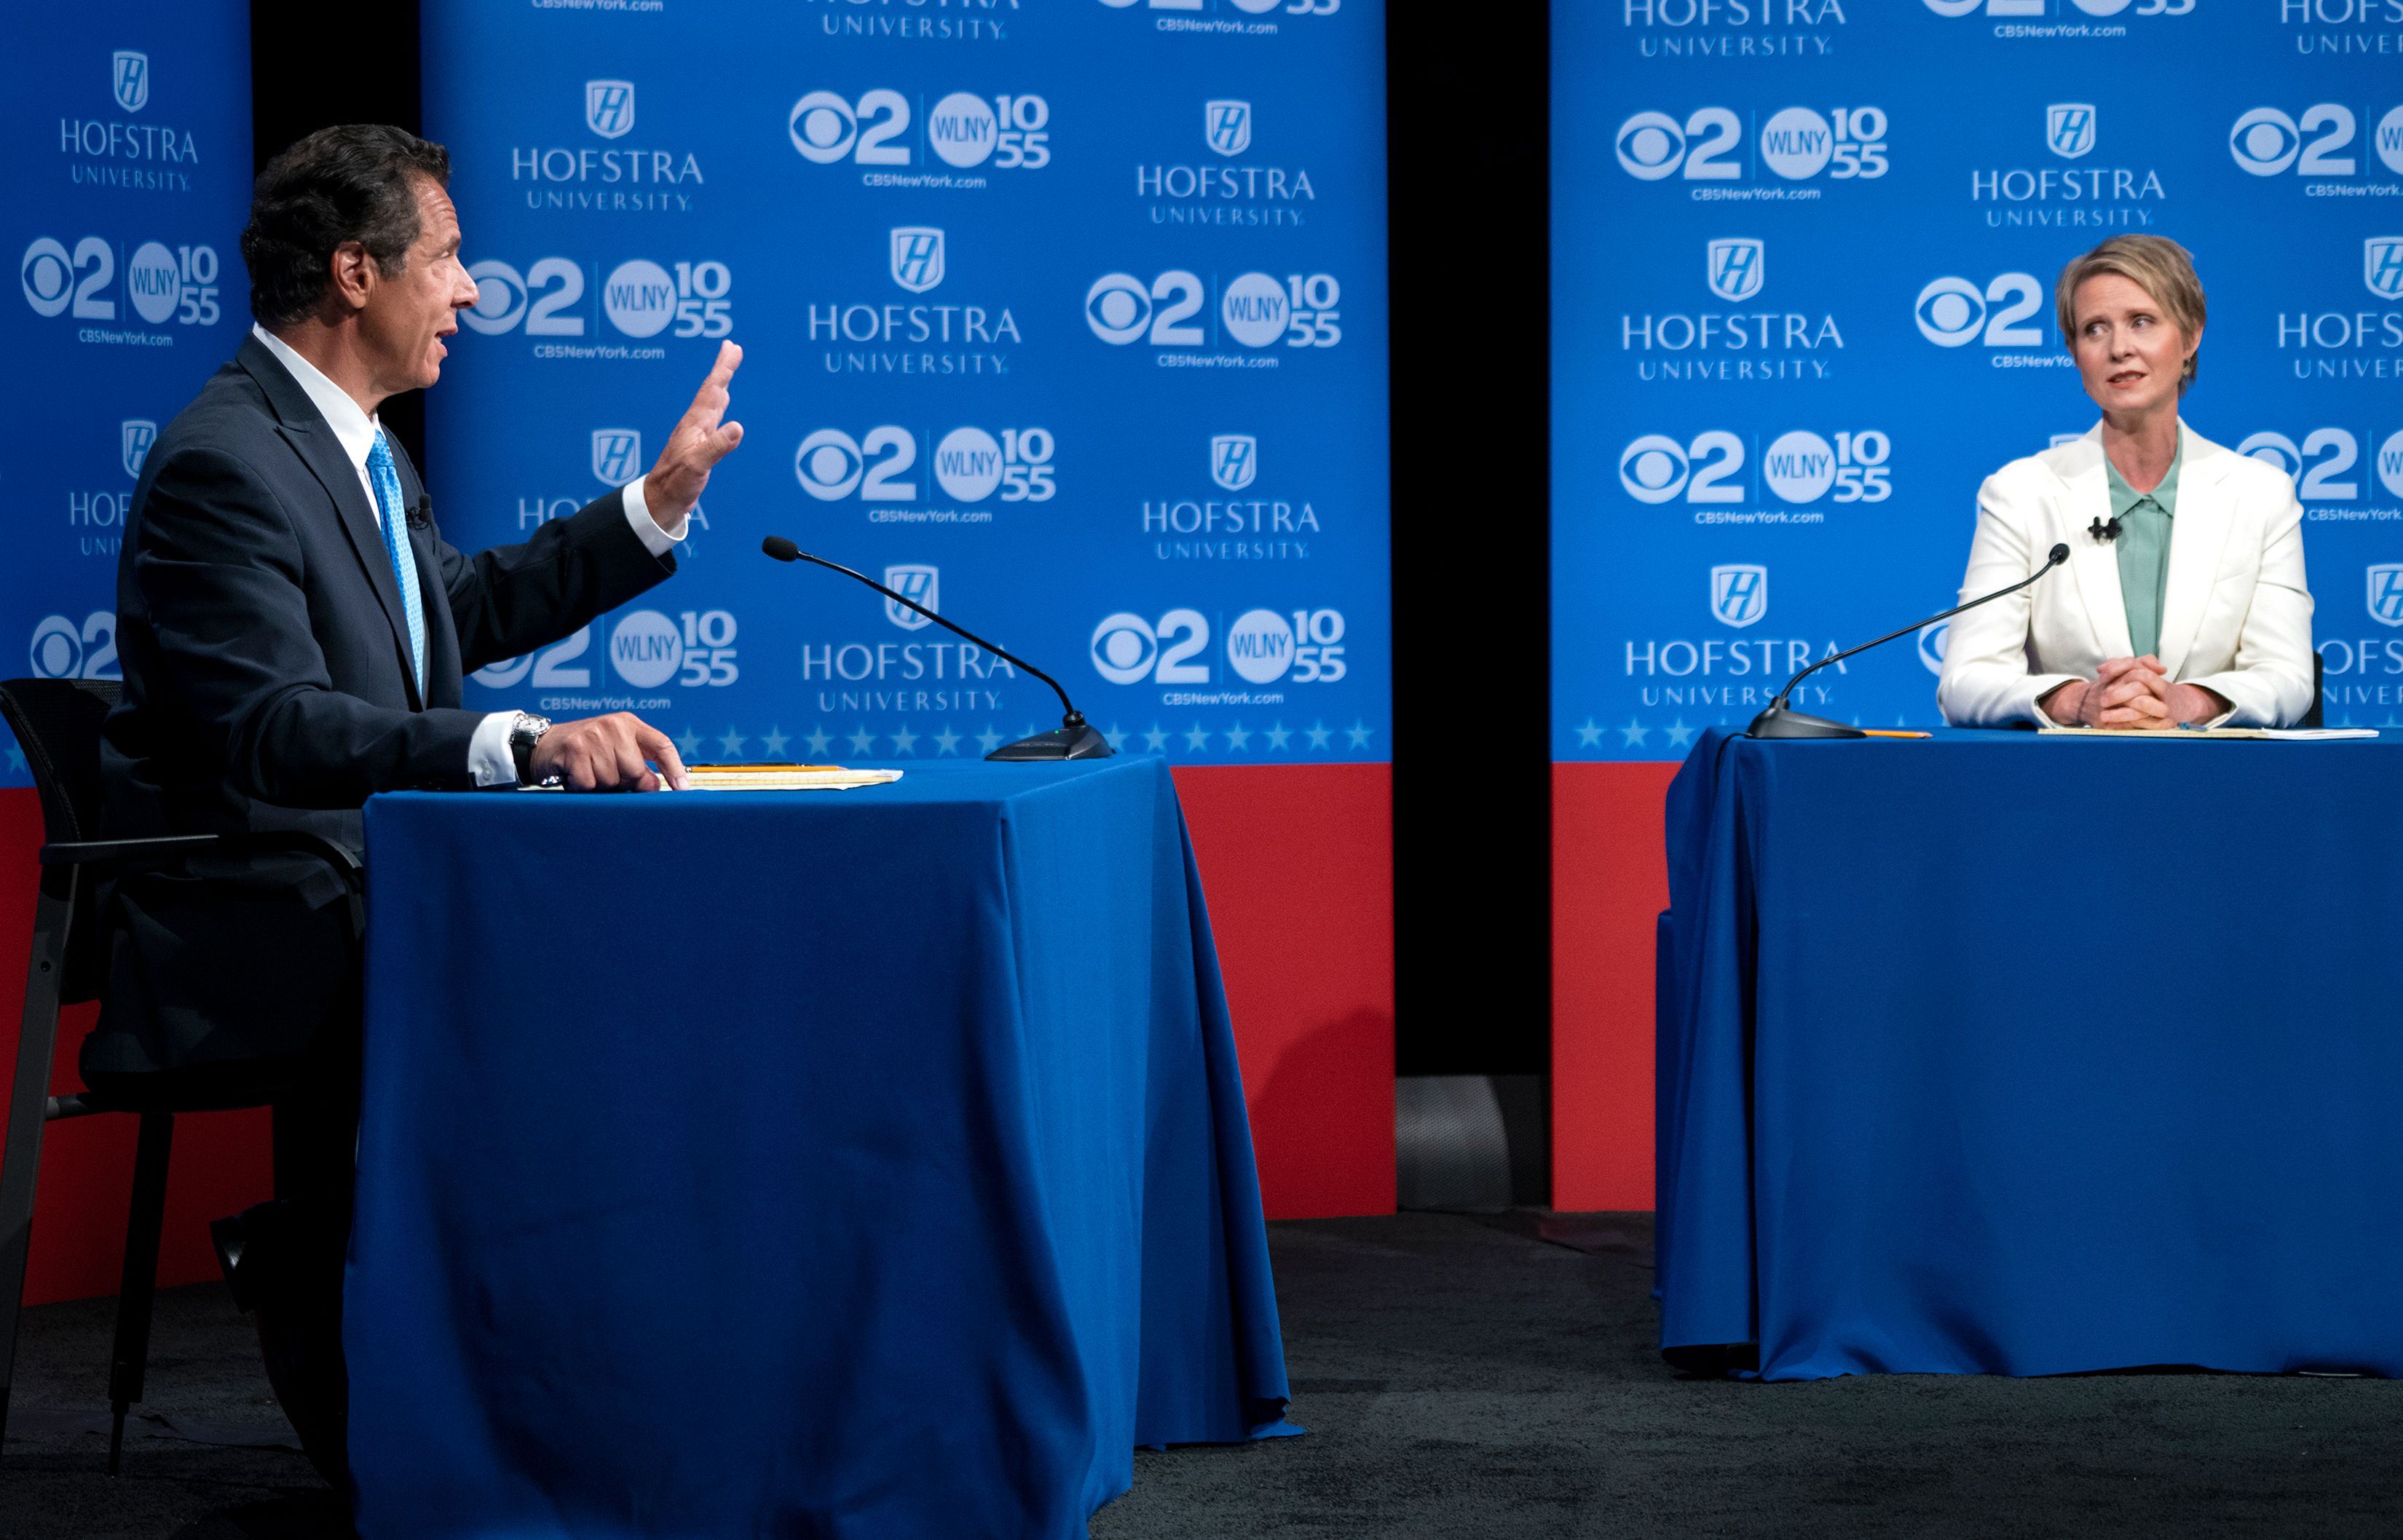 New York Governor Andrew Cuomo answers a question as  Democratic New York gubernatorial candidate Cynthia Nixon looks on during a gubernatorial debate at Hofstra University in Hempstead, New York, on August 29, 2018.